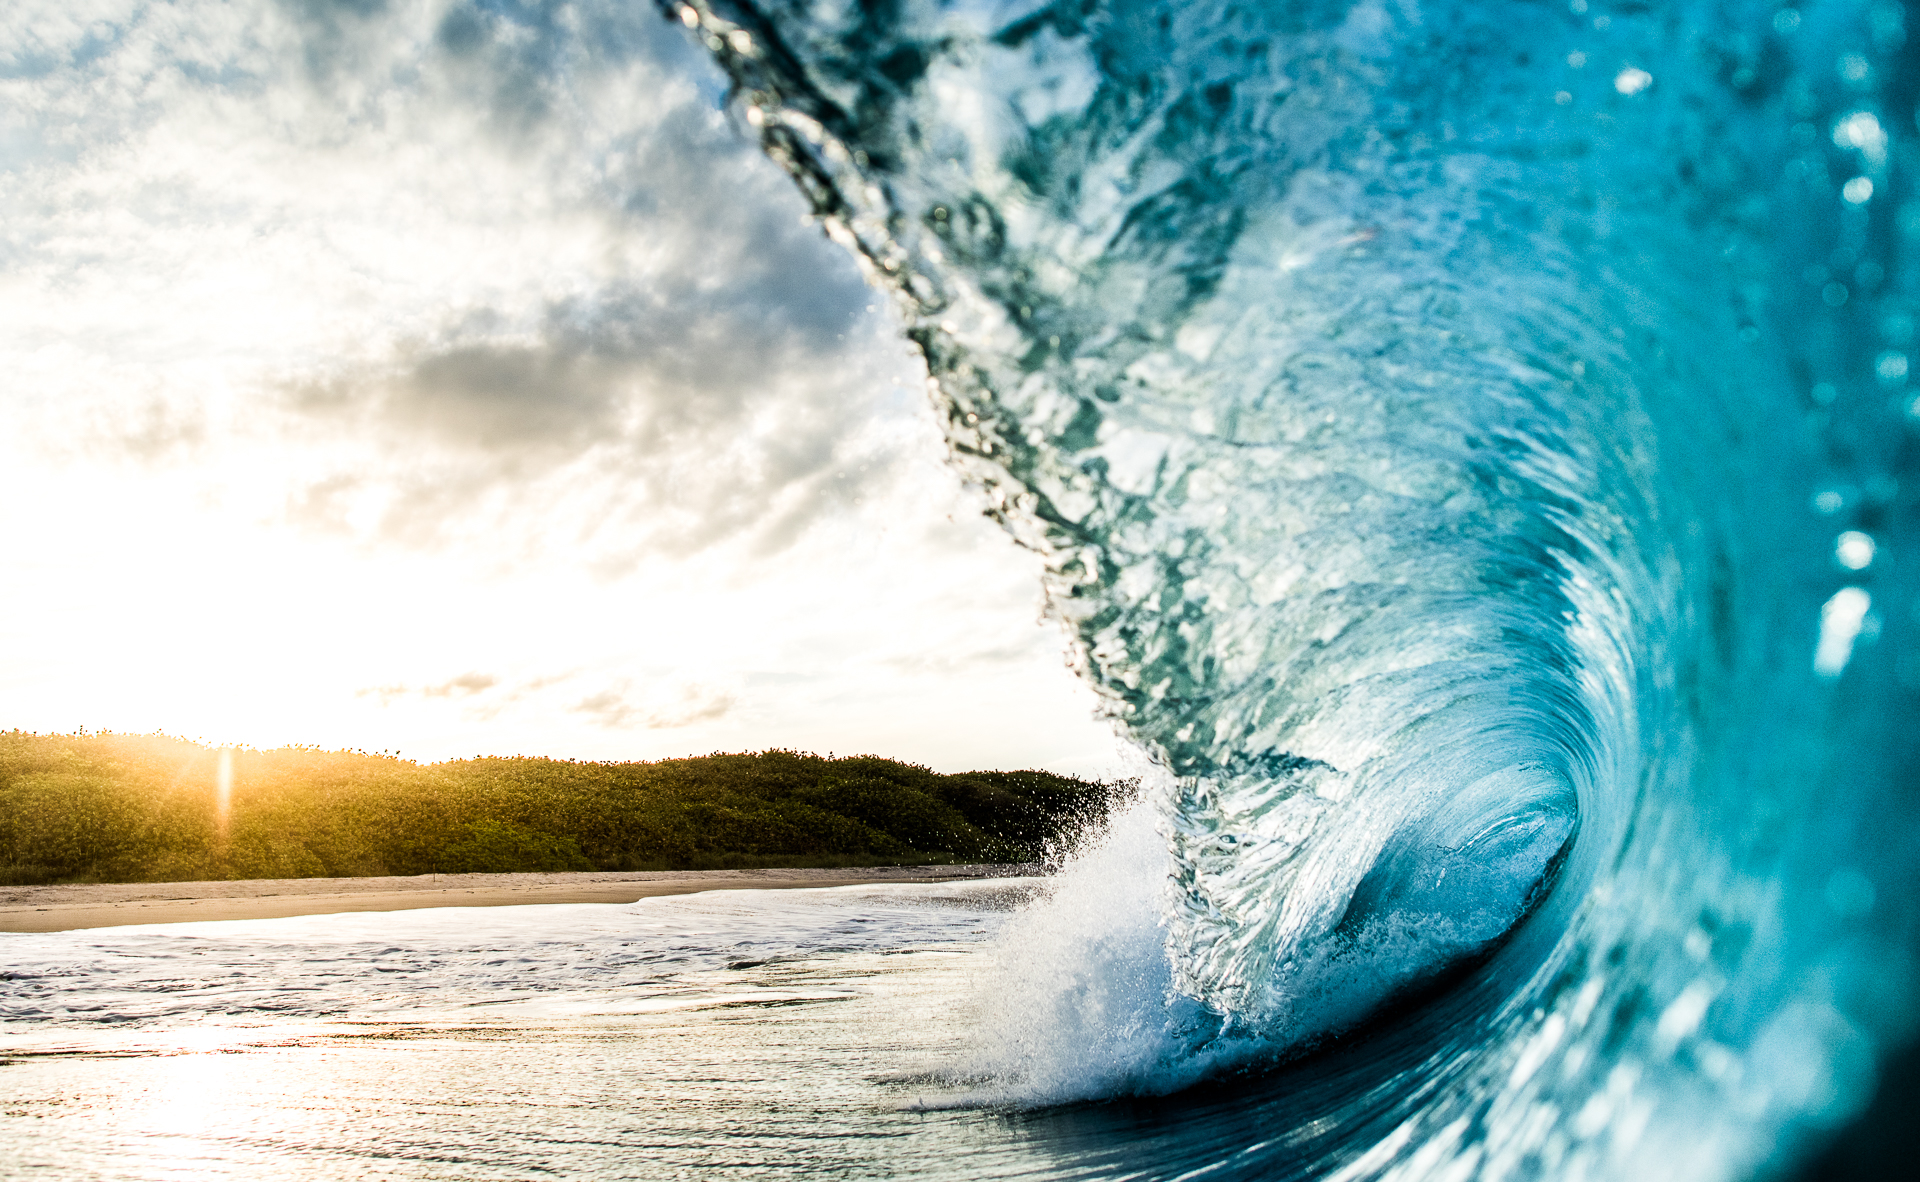 AfternoonSwell-287.jpg